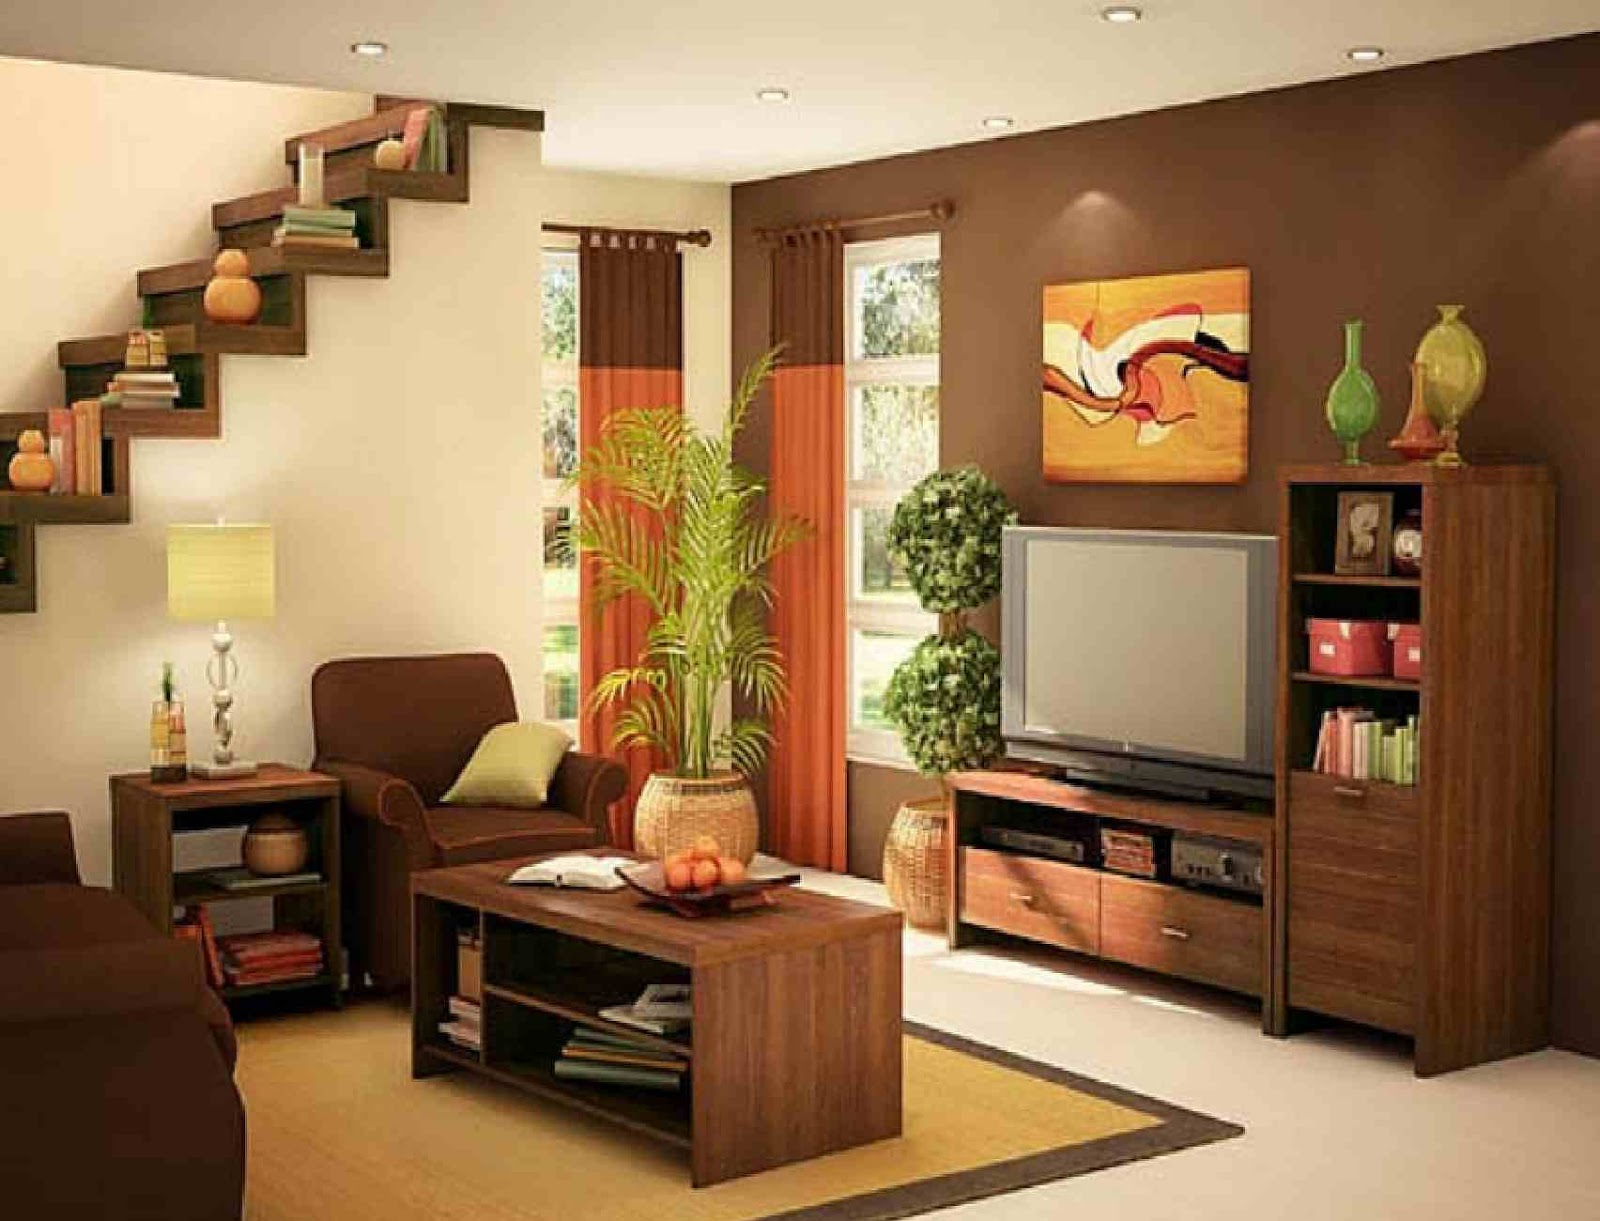 Home interior designs simple living room designs for Interior decoration ideas for small living room